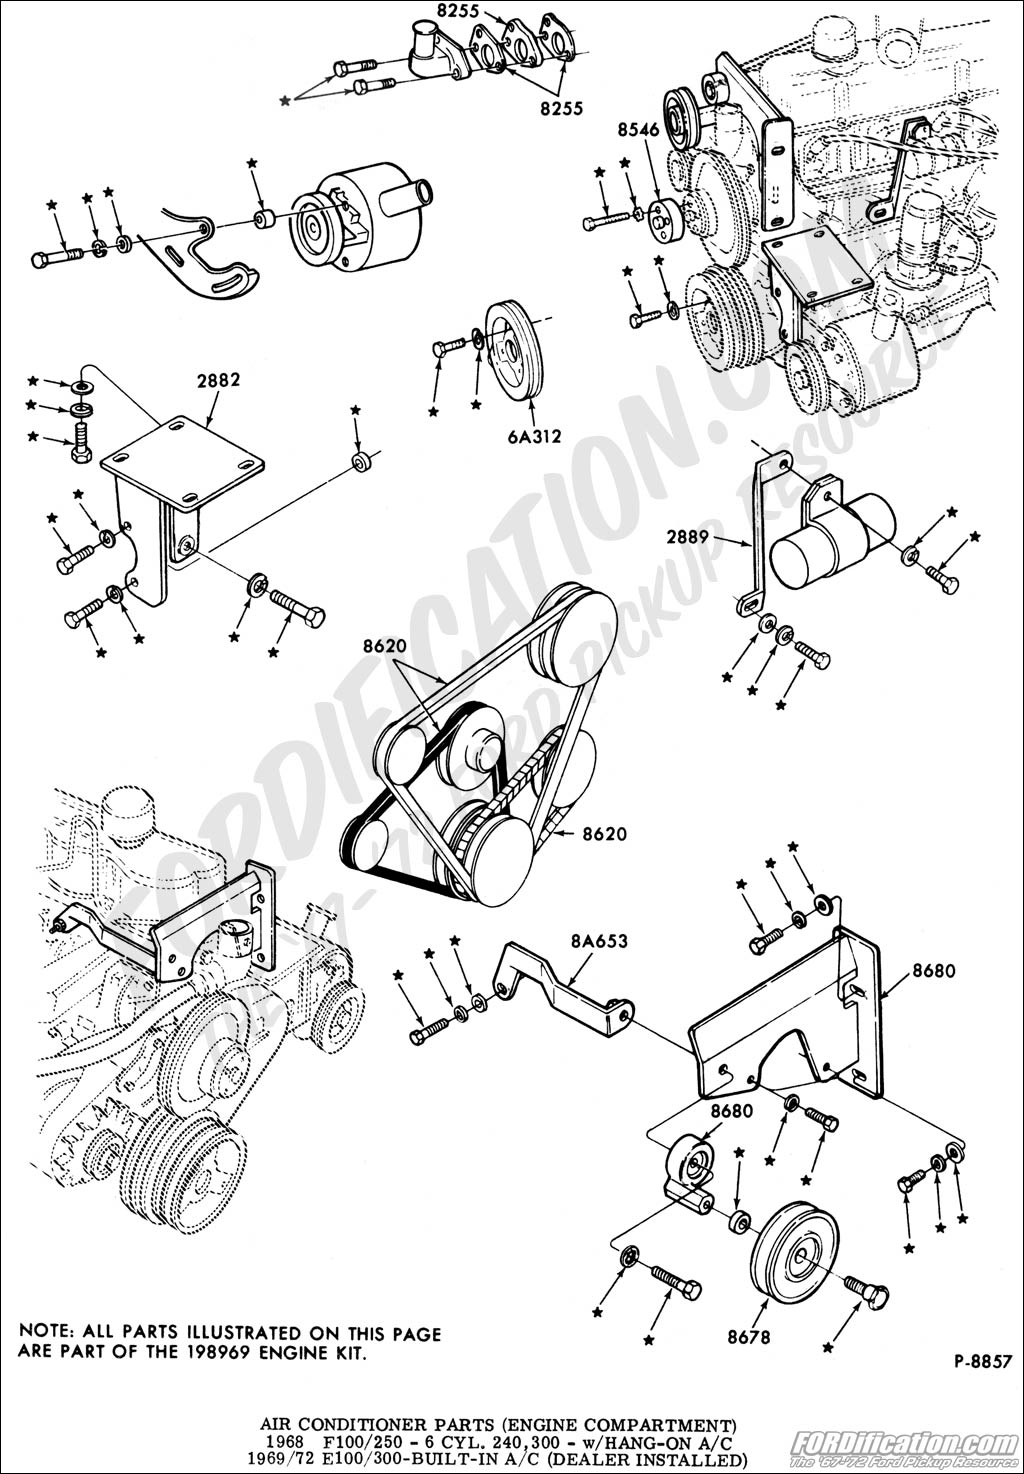 1344560 Ac Bracket For A 1967 F100 300 Engine Underdash Unit 3 on 1987 Corvette Wiring Diagram